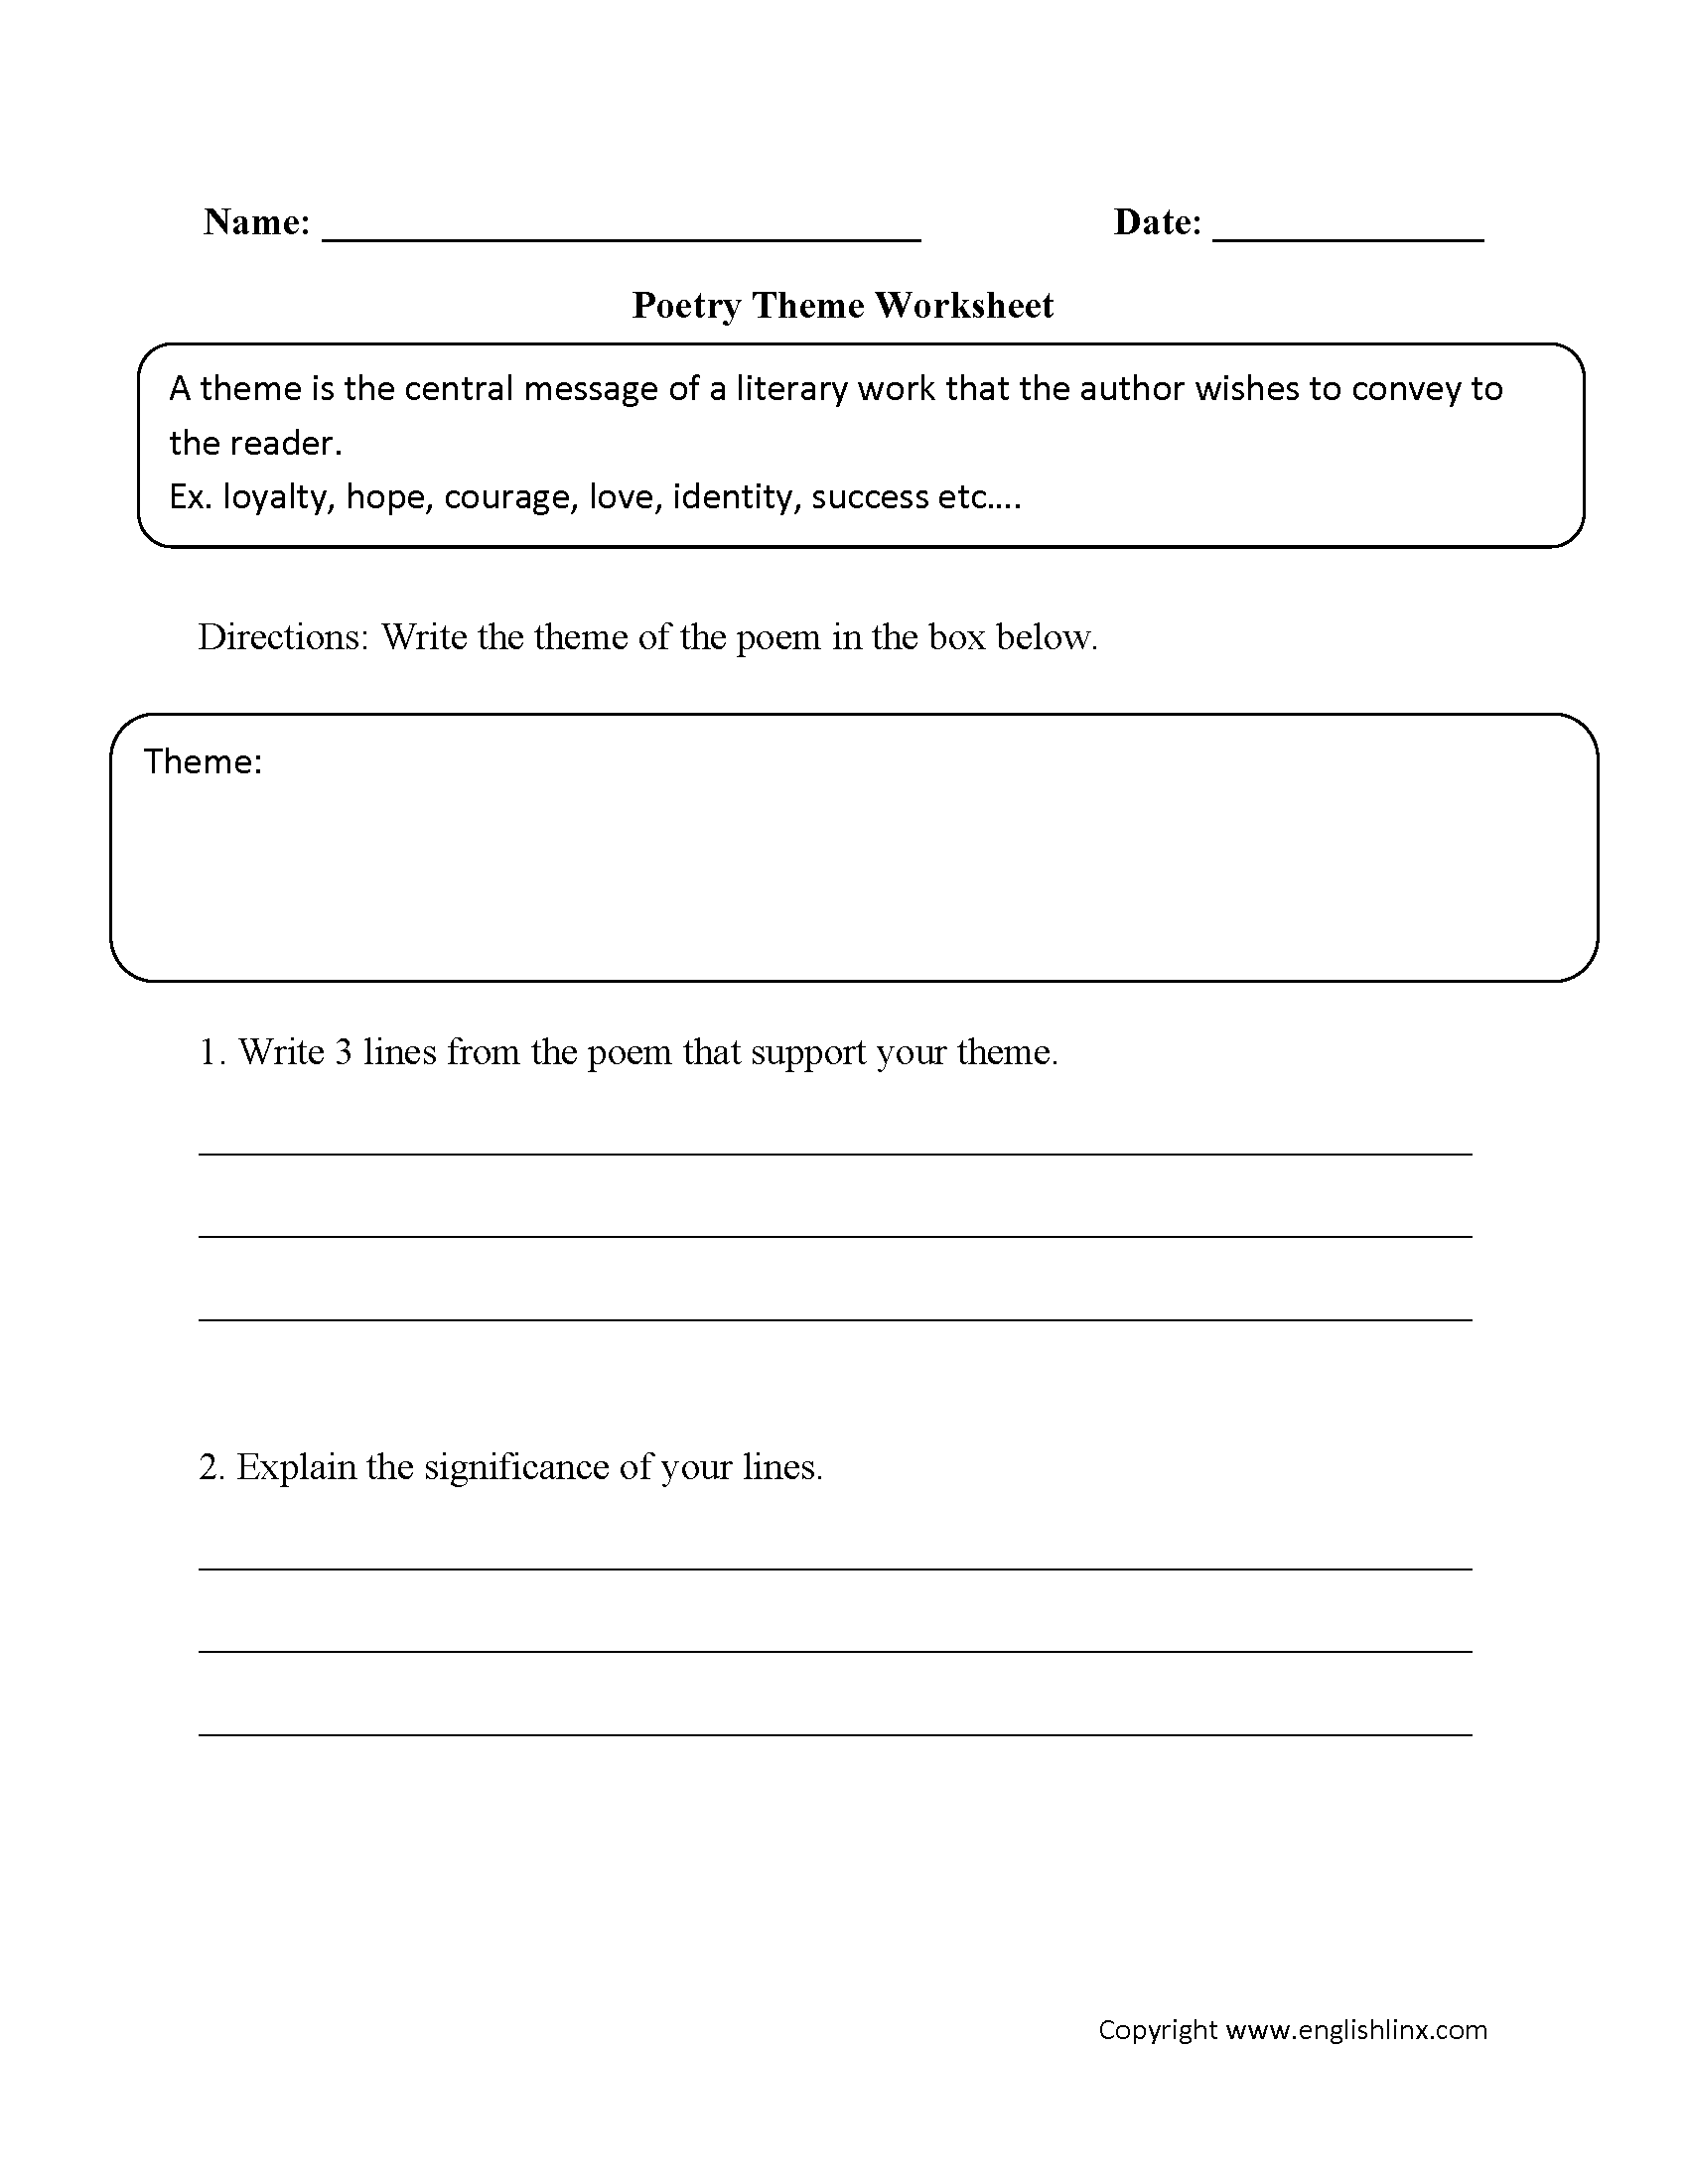 theme worksheets 4th grade laveyla – Theme Worksheets